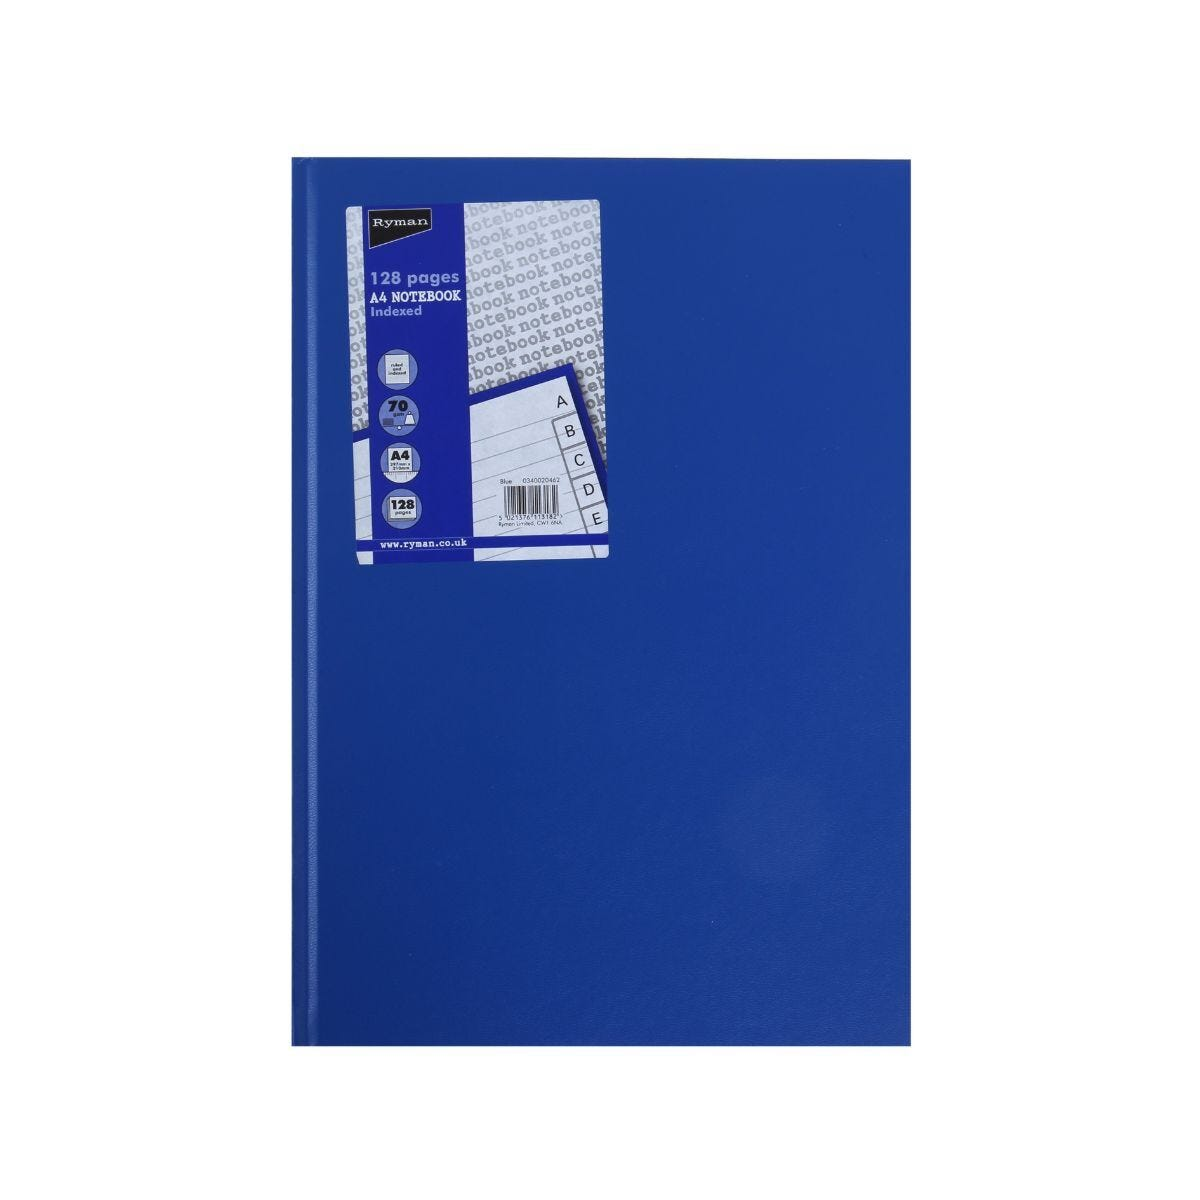 Ryman Case Bound Memo Book Indexed A4 128 Pages 70gsm